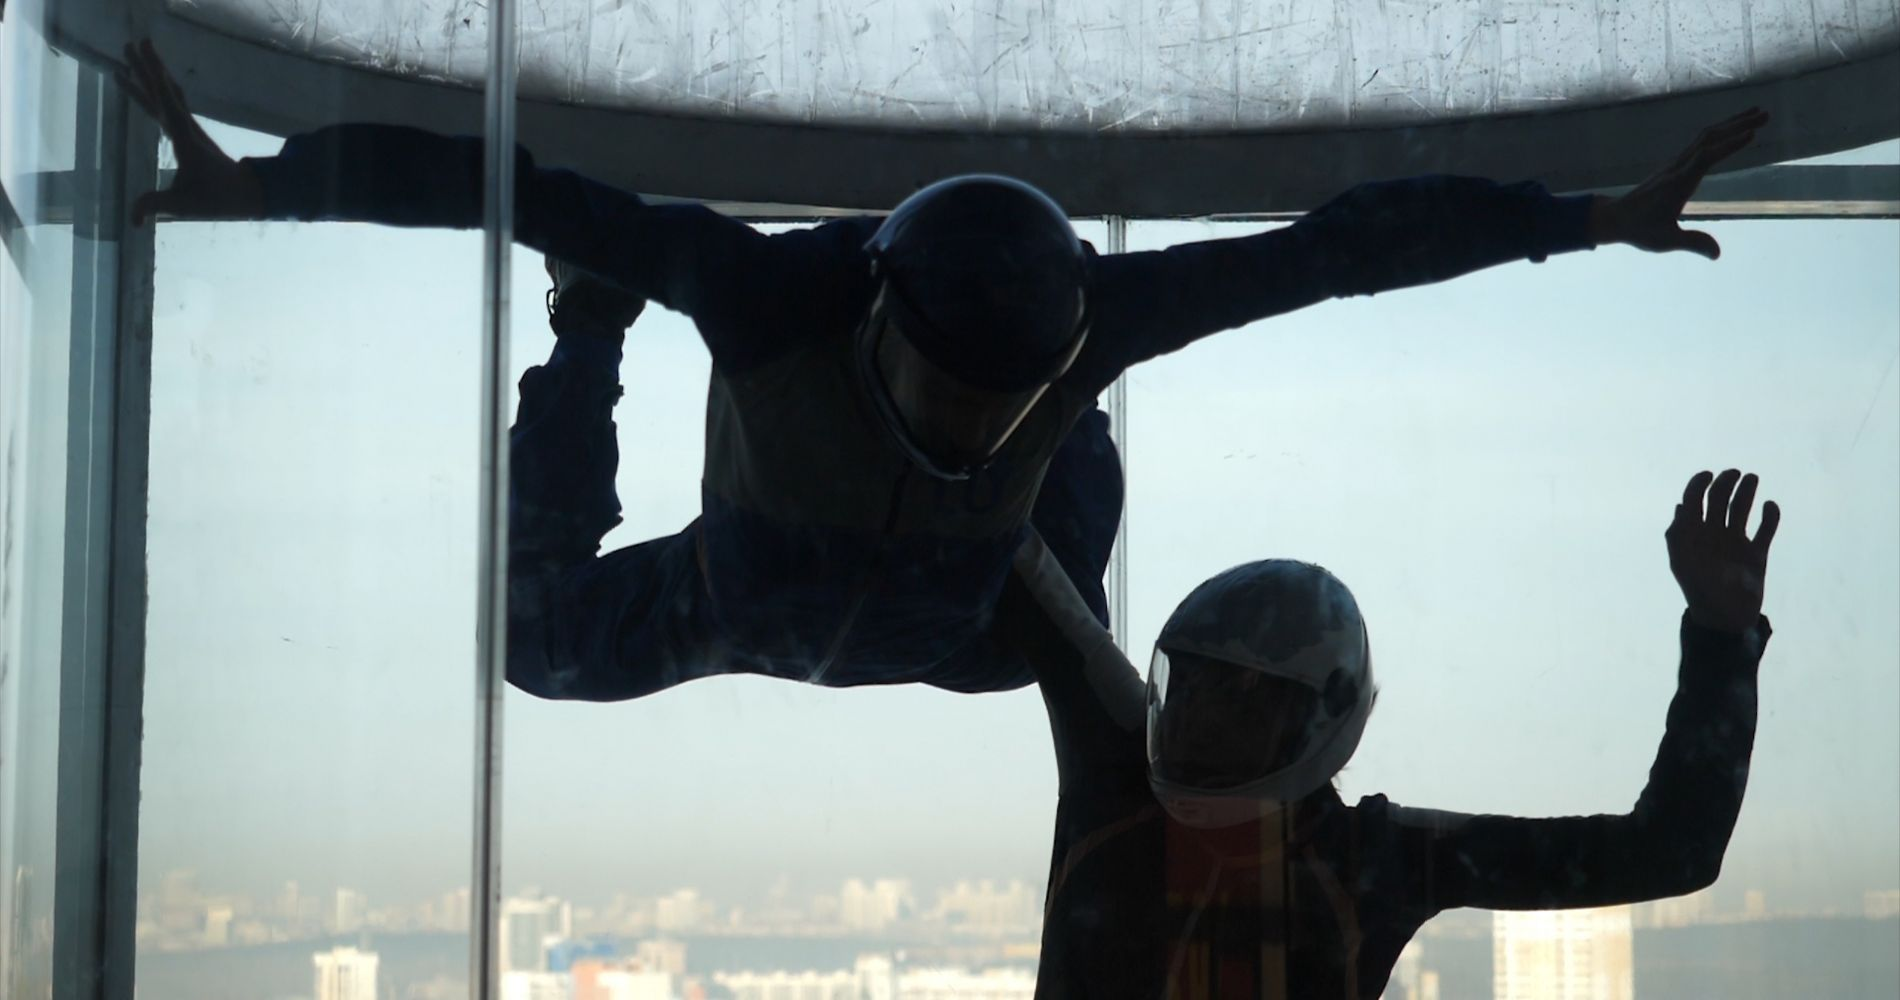 Indoor Skydiving for Two in USA